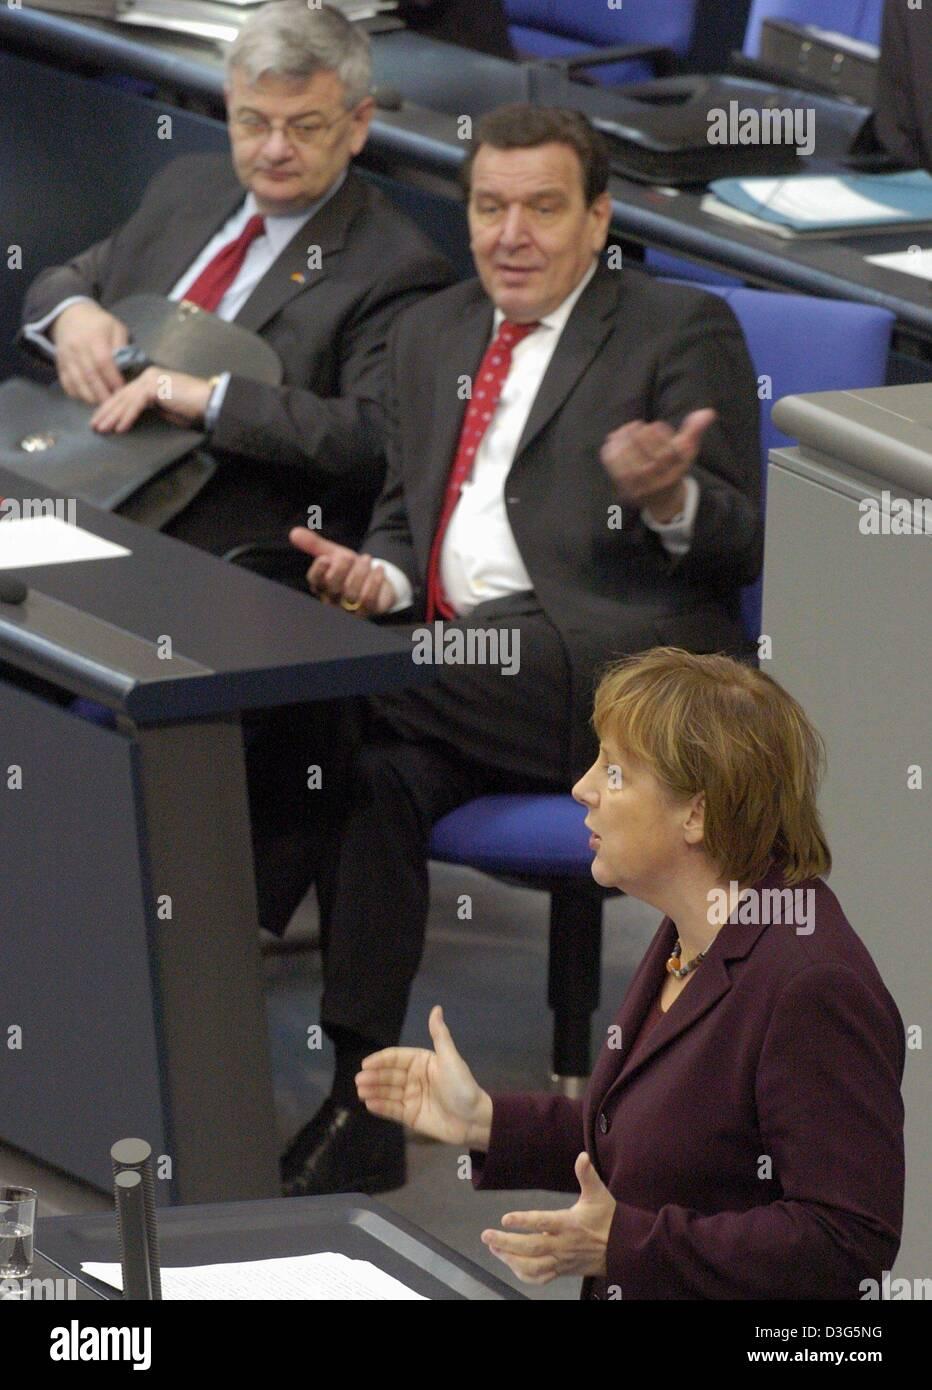 (dpa) - German Chancellor Gerhard Schroeder (C) and Foreign Minister and Vice Chancellor Joschka Fischer (L) listen to a speech by opposition leader Angela Merkel during a budget debate in the Bundestag in Berlin, 26 November 2003. Opposition parties accused Schroeder's government of bringing Germany to the 'brink of bankruptcy' by continuing heavy borrowing despite a flat economy. Stock Photo